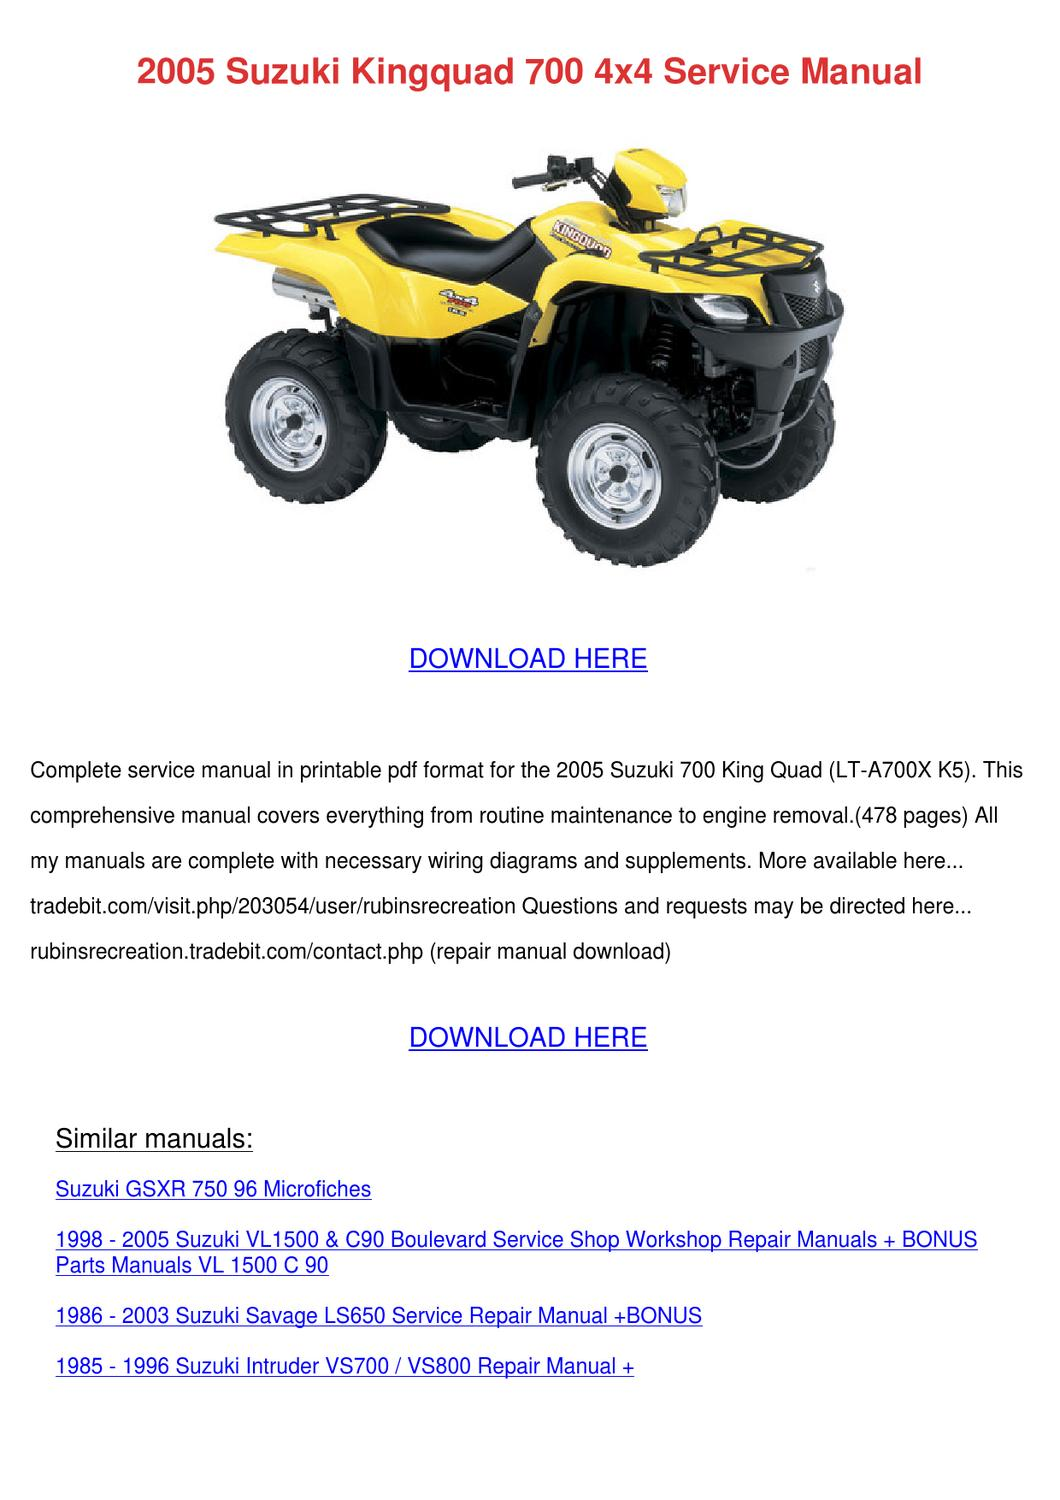 2005 Suzuki Kingquad 700 4x4 Service Manual By Kattie